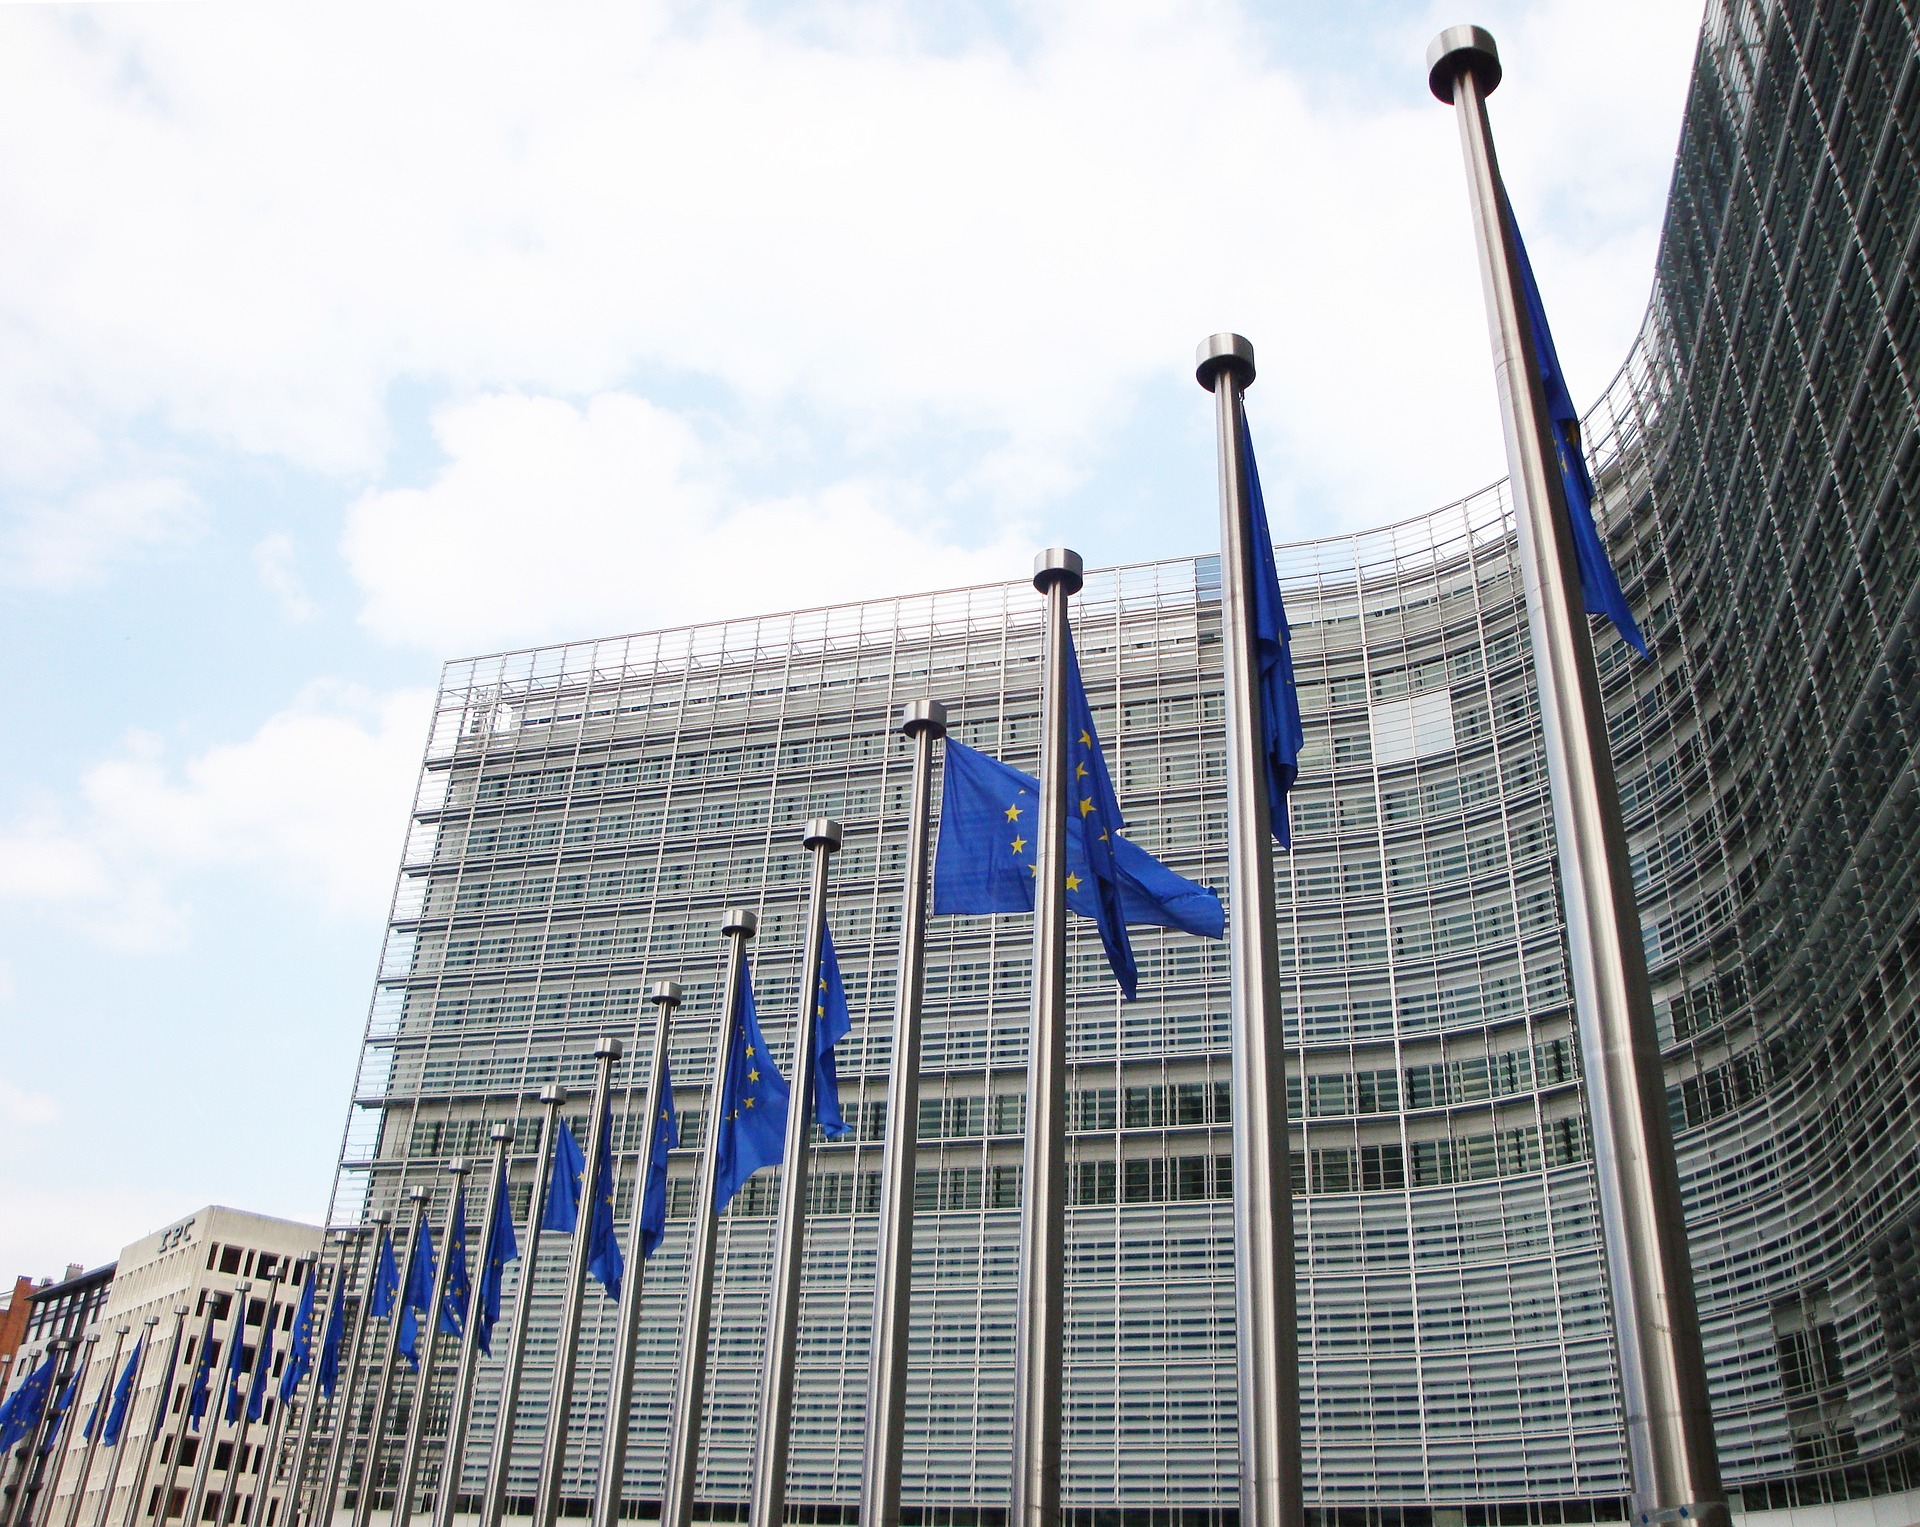 Commissione Europea a Bruxelles